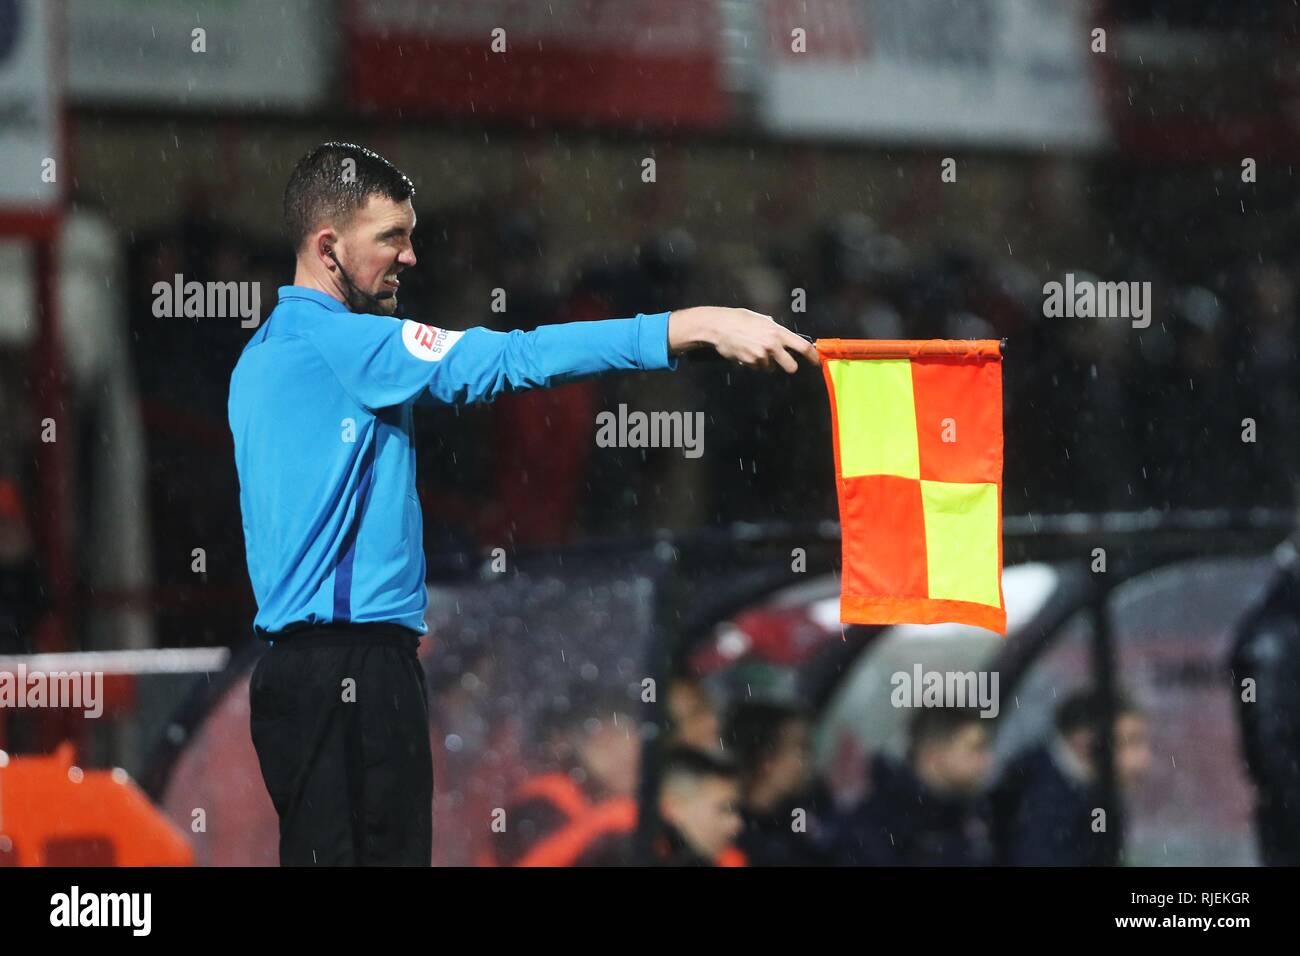 Assistant referee / Linesman/ Lino / Ref / Referee / League two / Cheltenham Town Football Club  Picture by Antony Thompson - Thousand Word Media, NO  - Stock Image